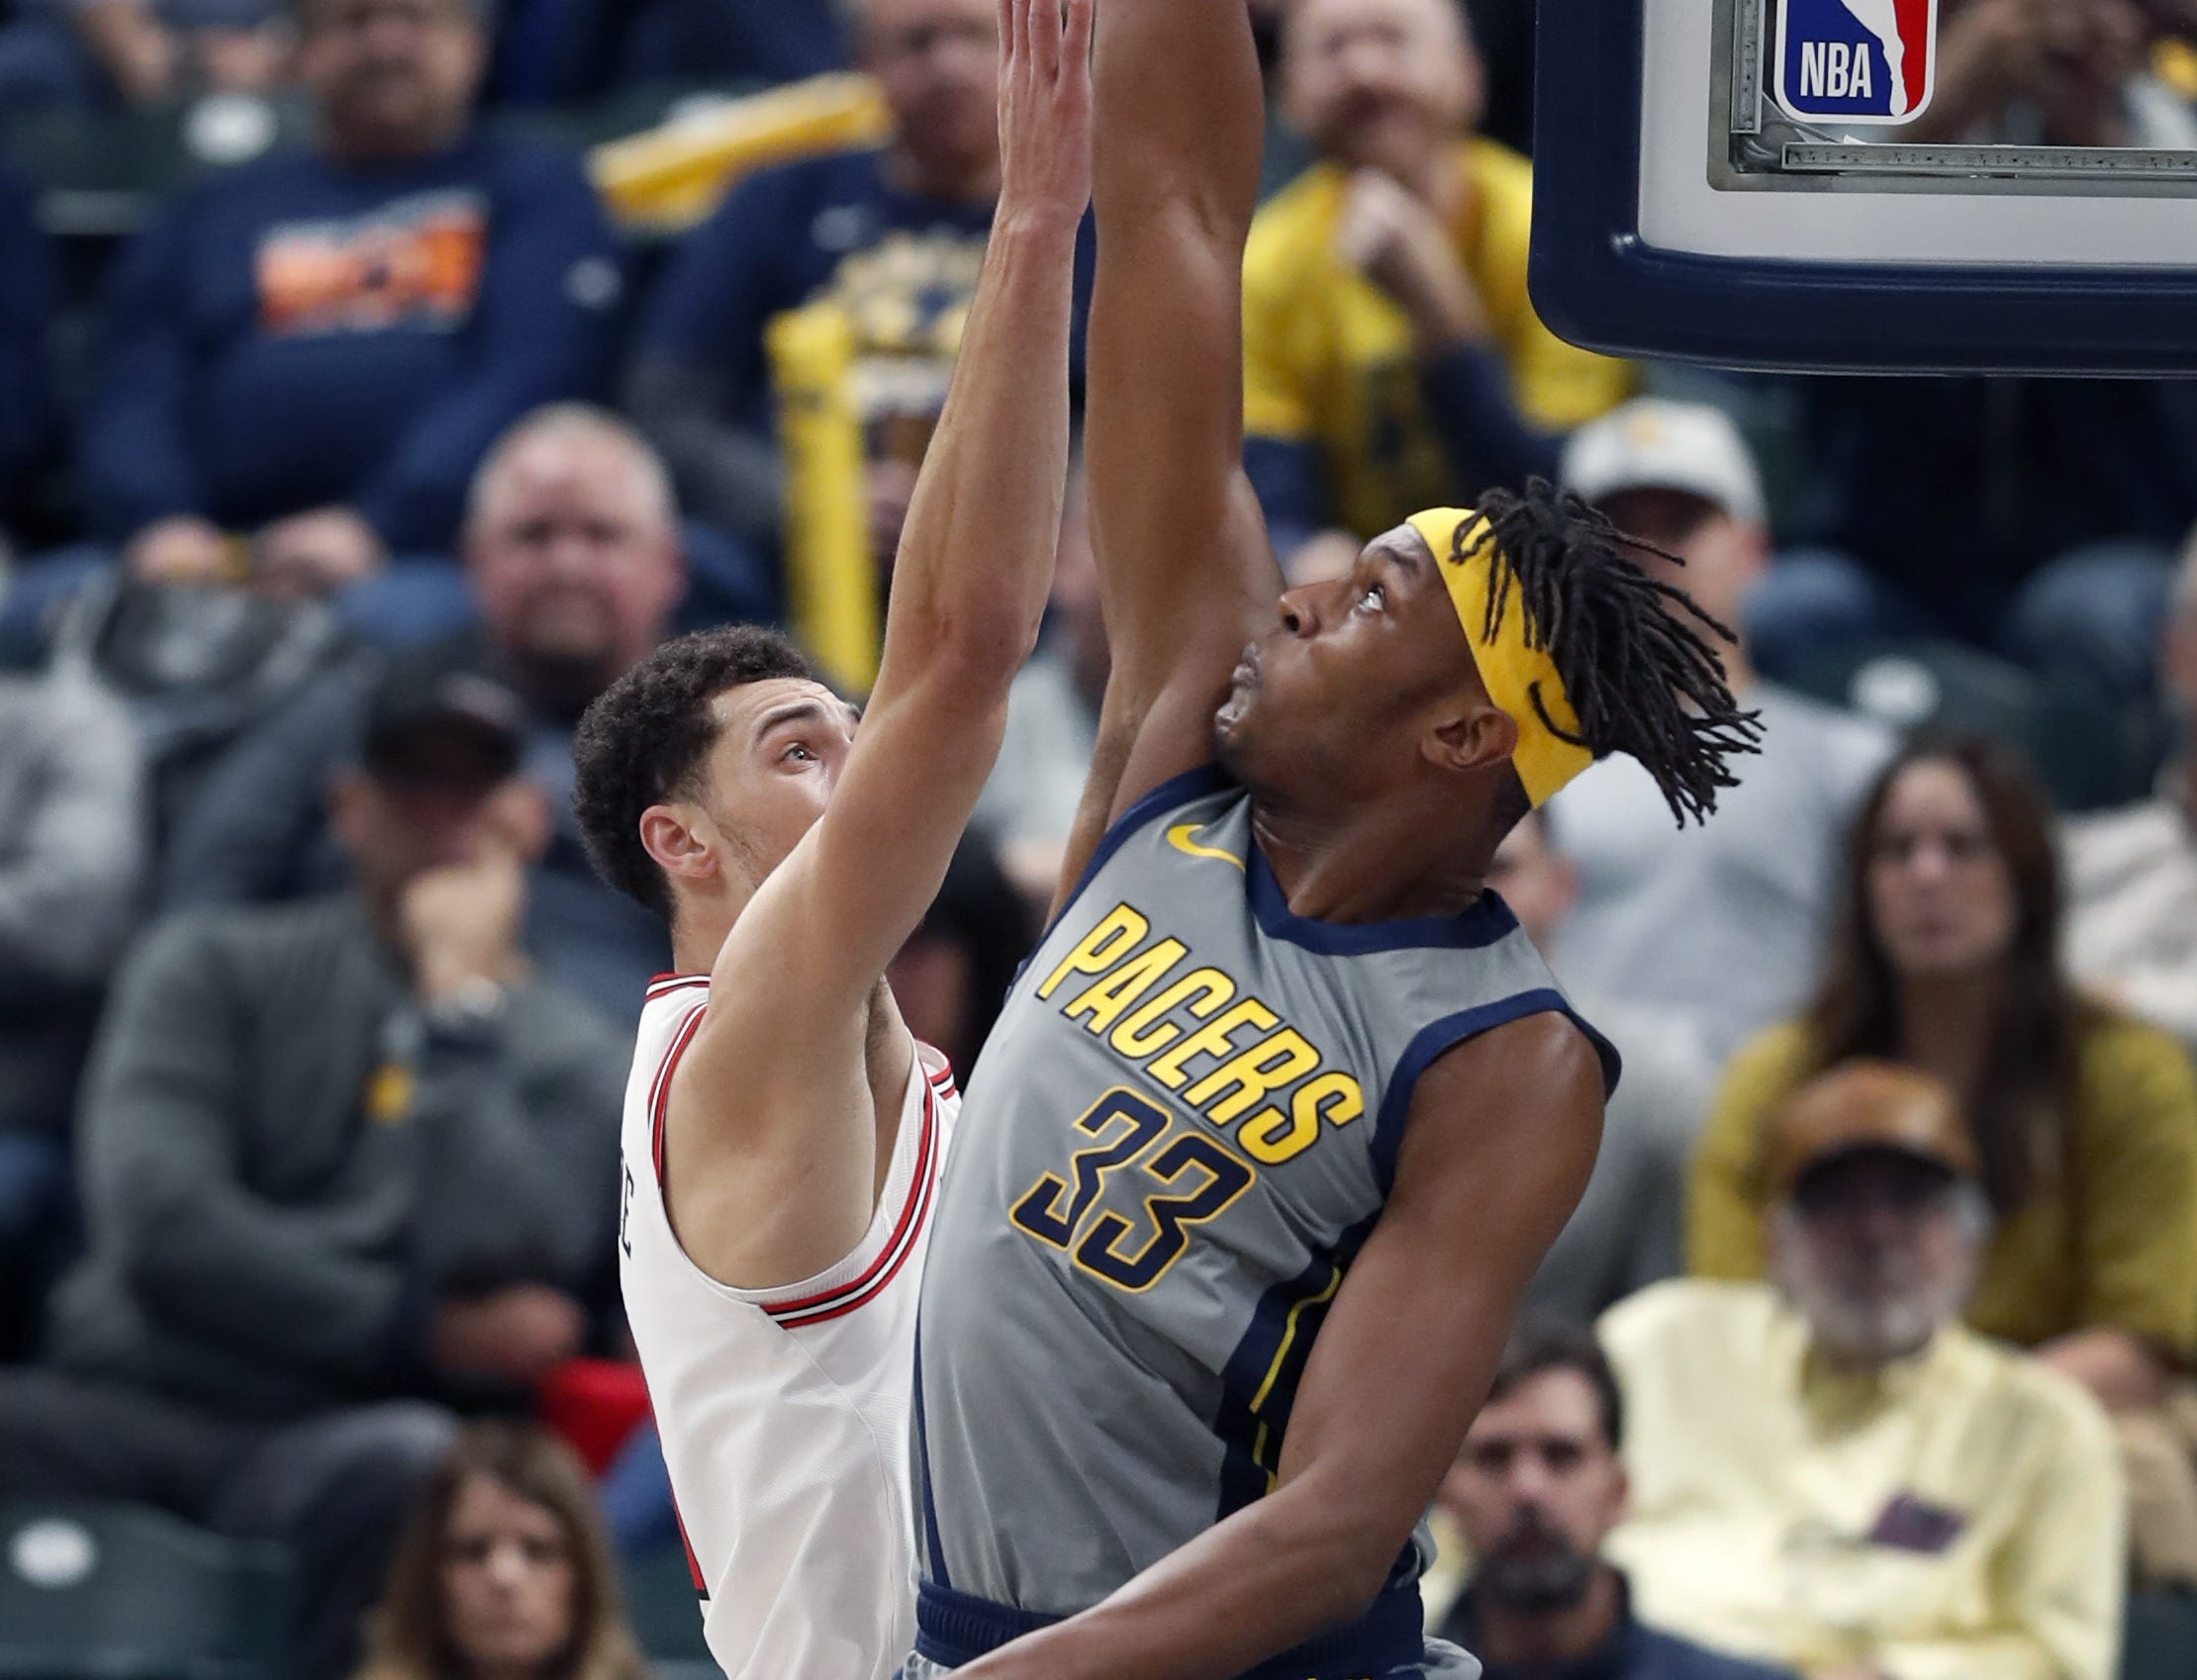 Indiana Pacers center Myles Turner (33) blocks the shot by Chicago Bulls guard Zach LaVine (8) in the first half of their game at Bankers Life Fieldhouse on Tuesday, Dec. 4, 2018.